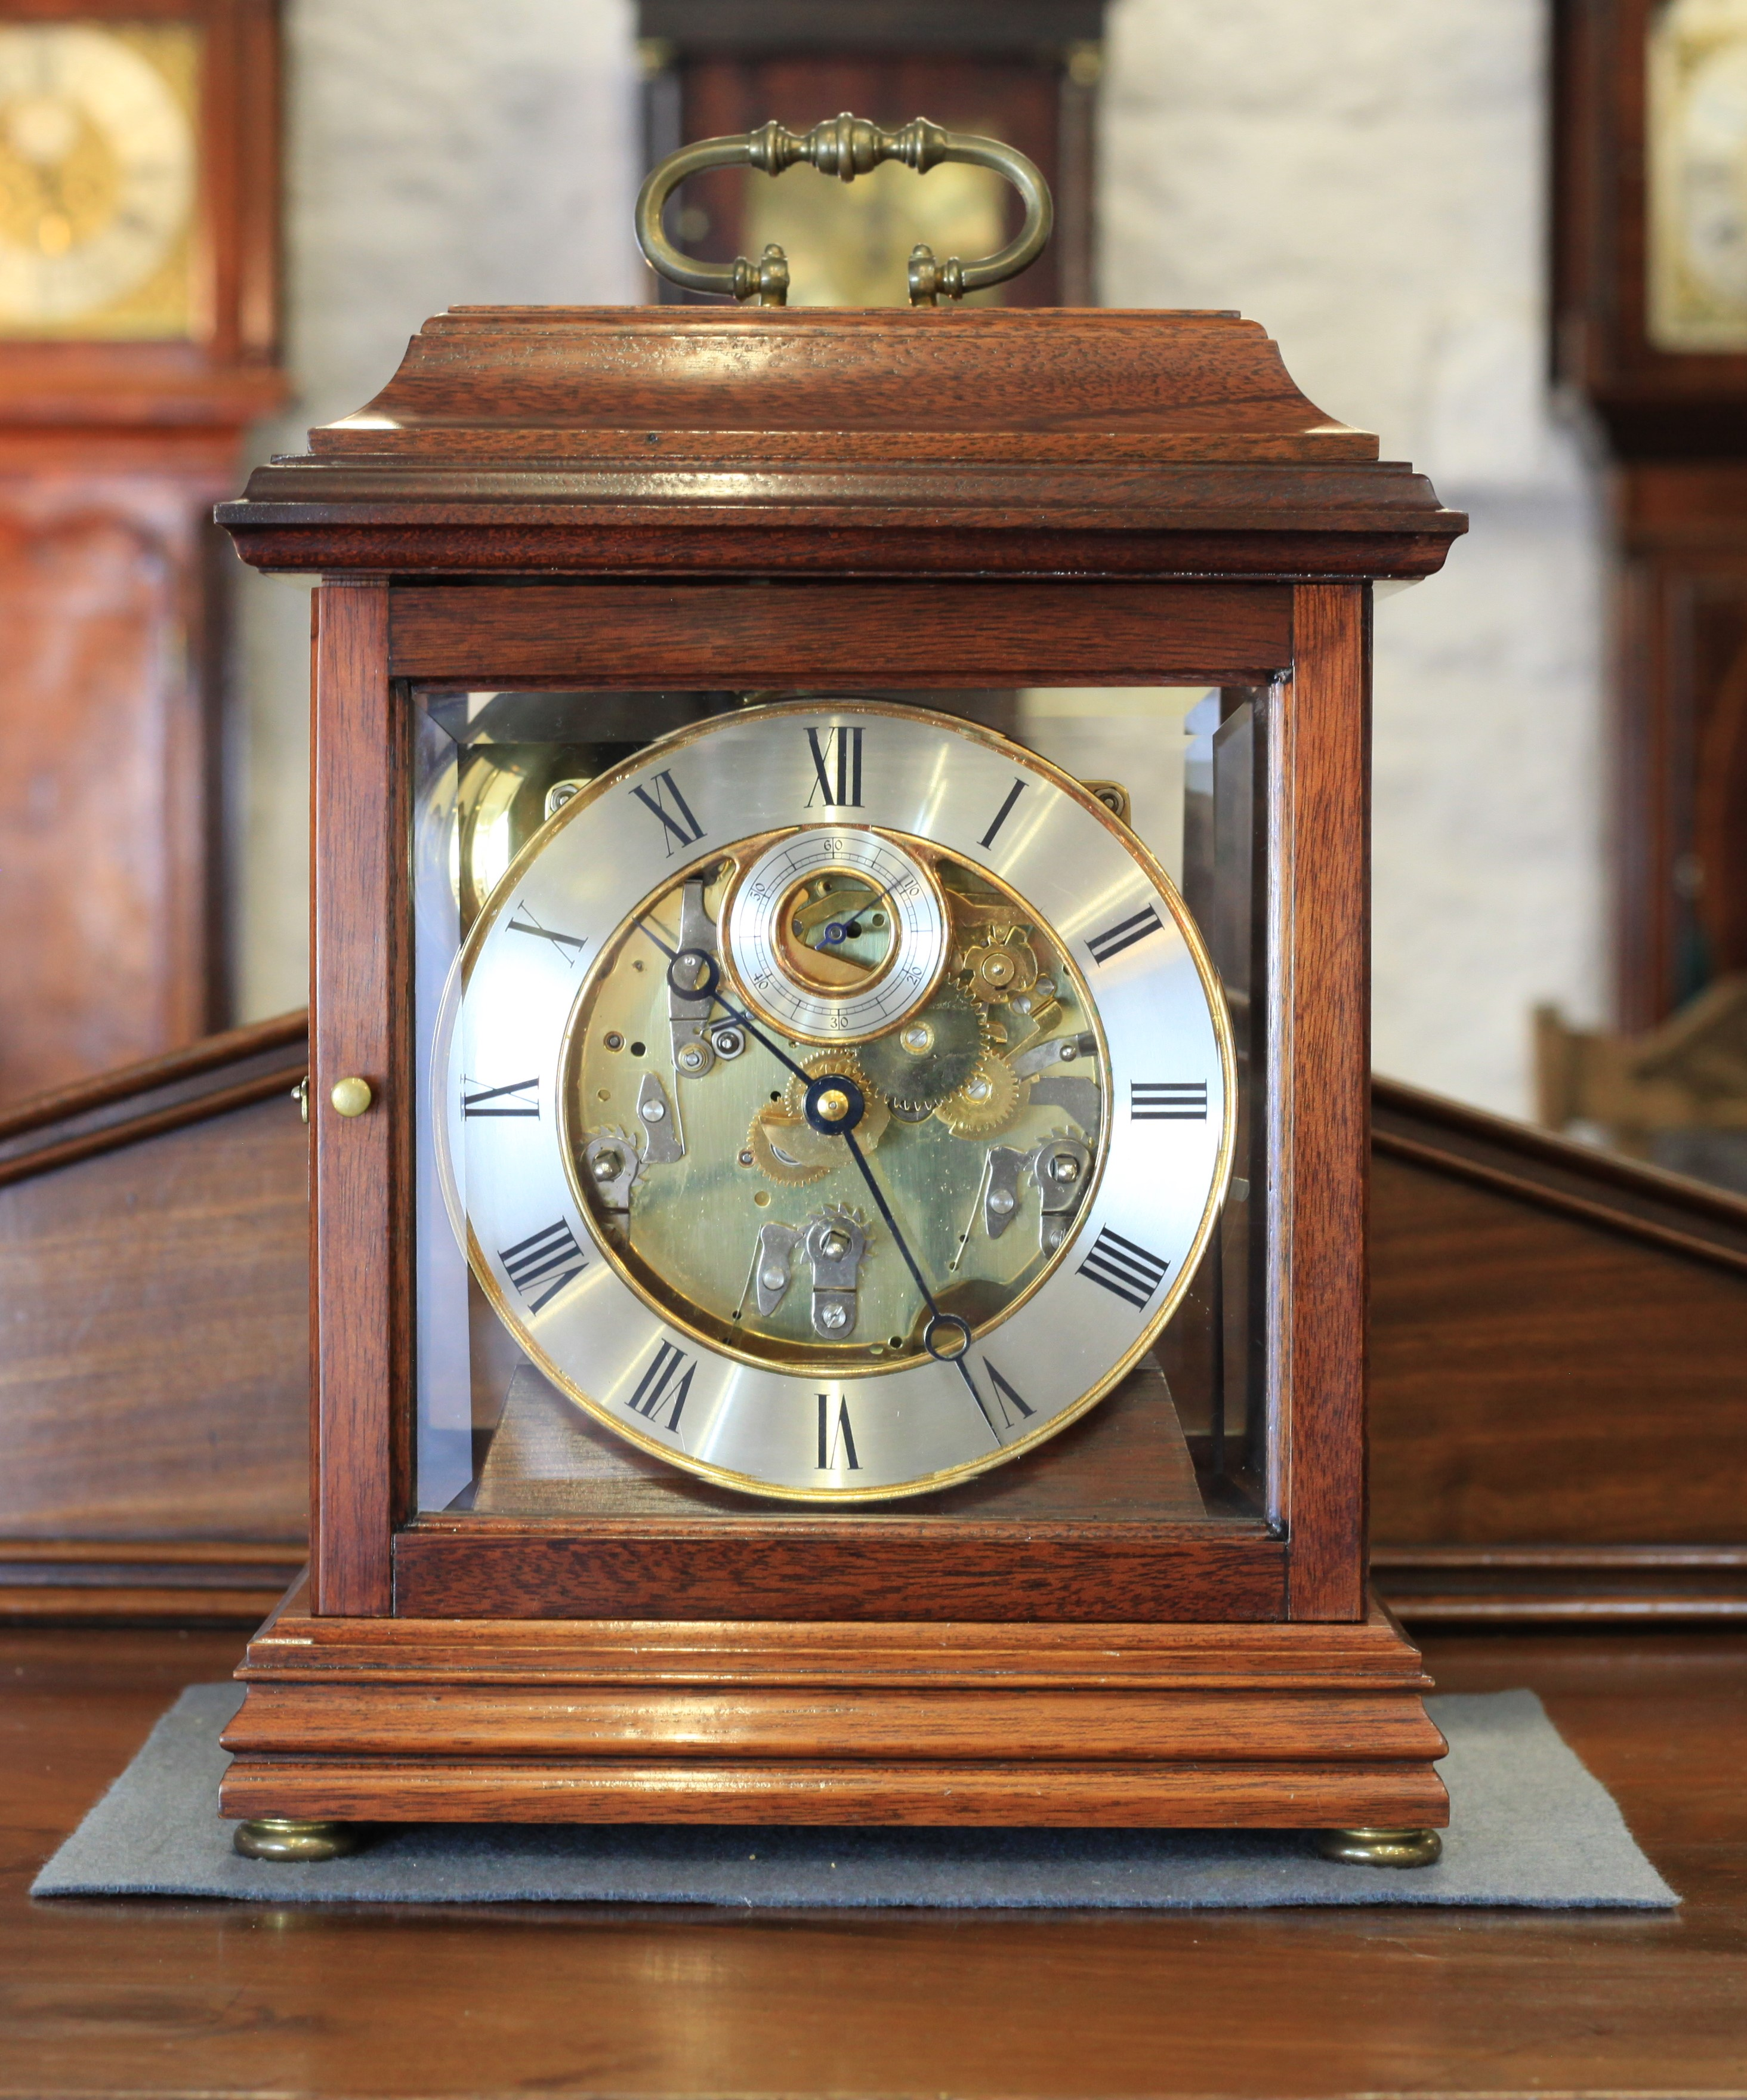 A Rather Lovely Hermle Five Glass Mantel Clock with four Polished Bells.